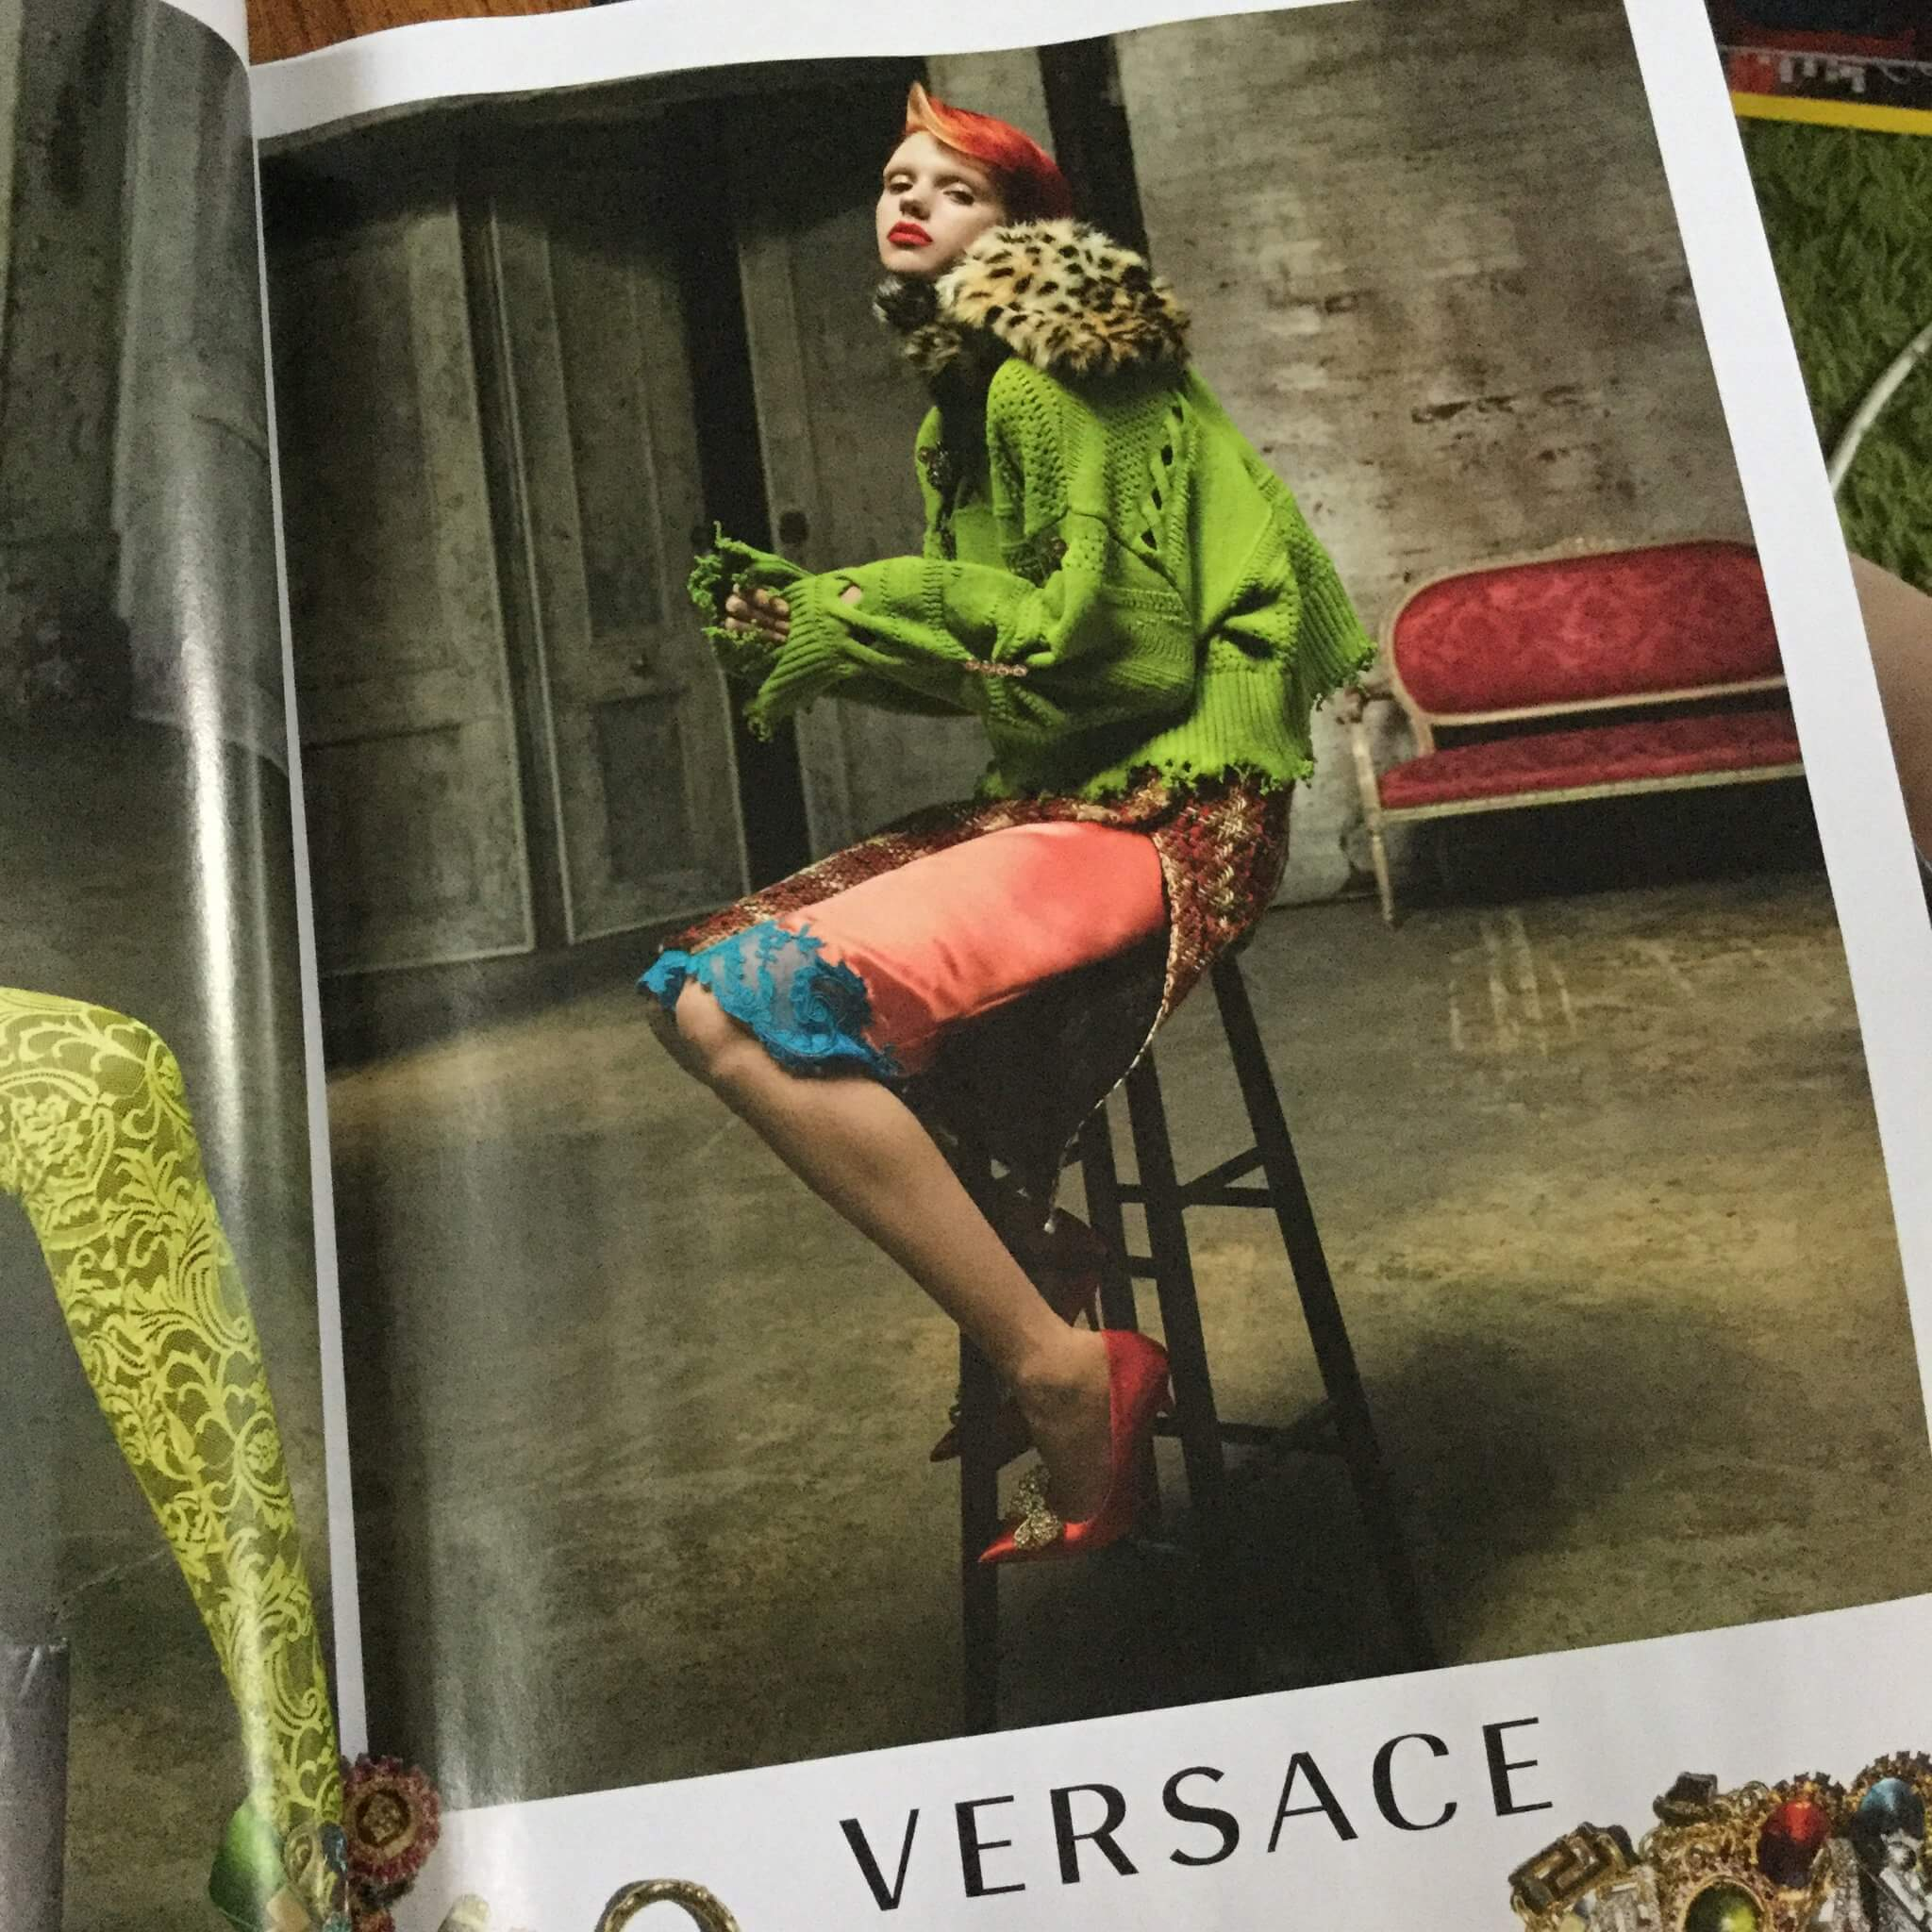 Versace advert in British Vogue, October 2019